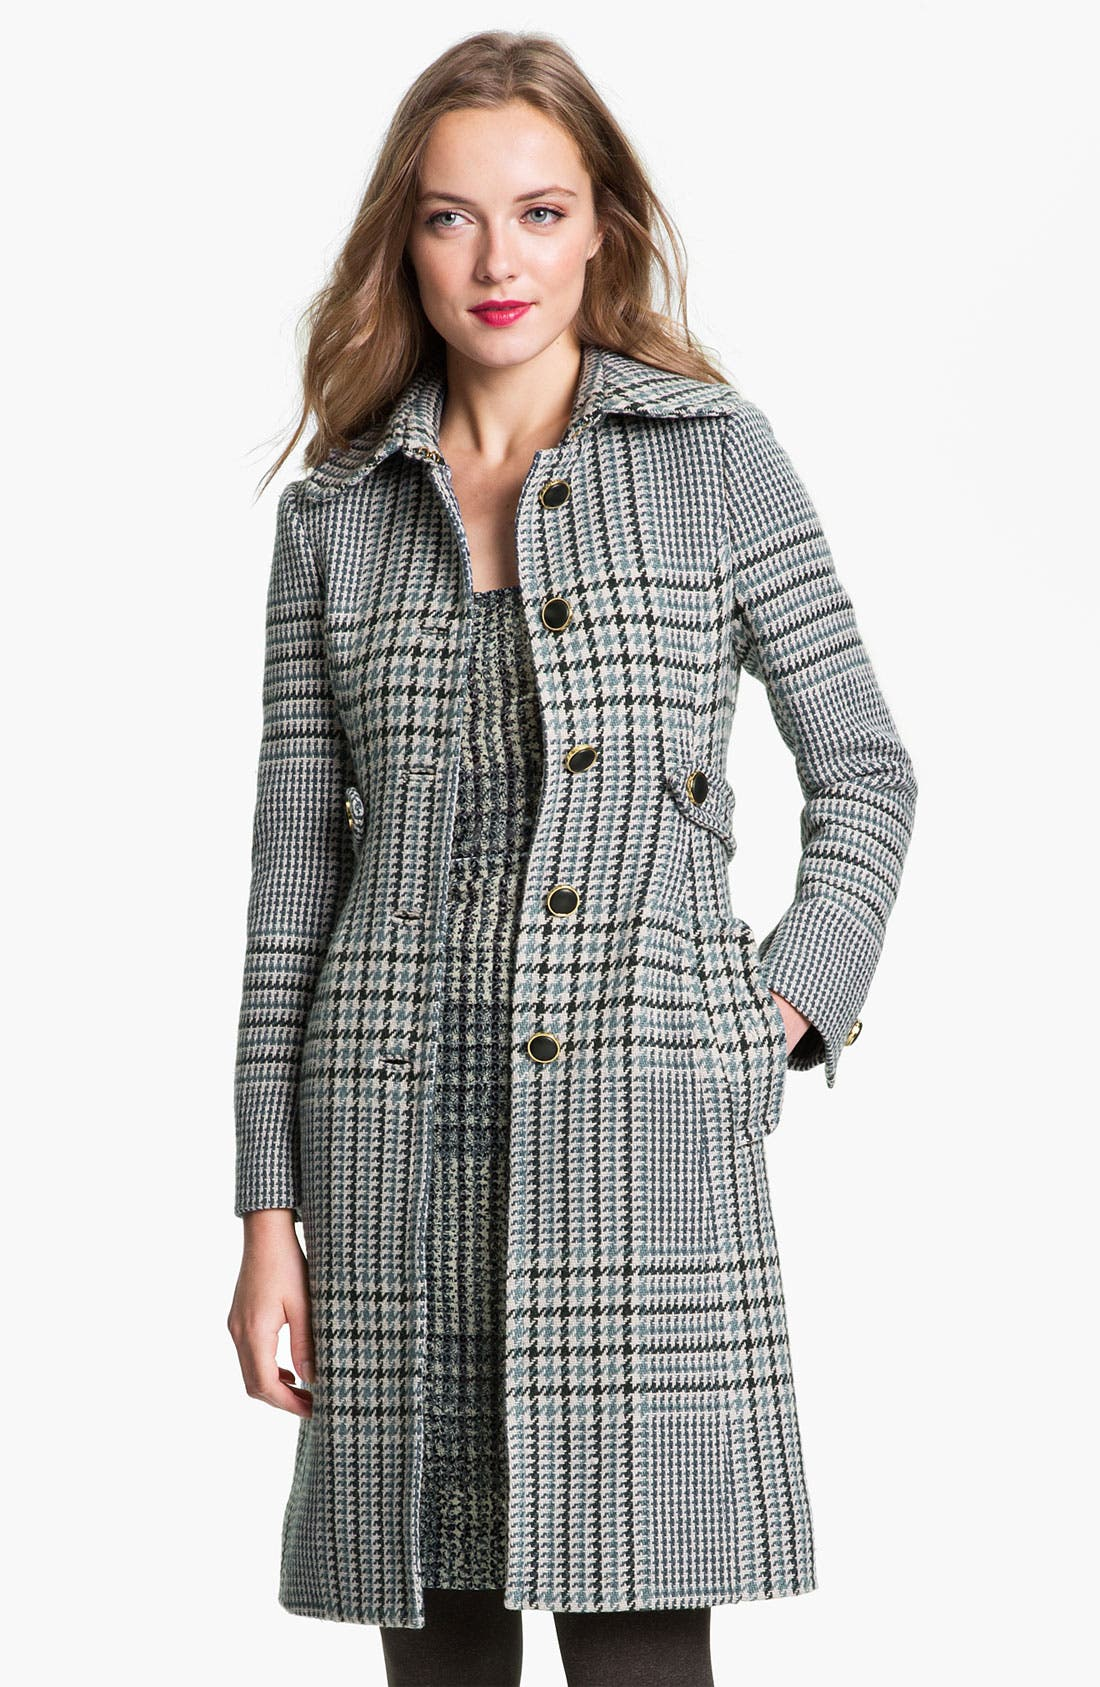 Main Image - Tory Burch 'Virginia' Houndstooth Coat